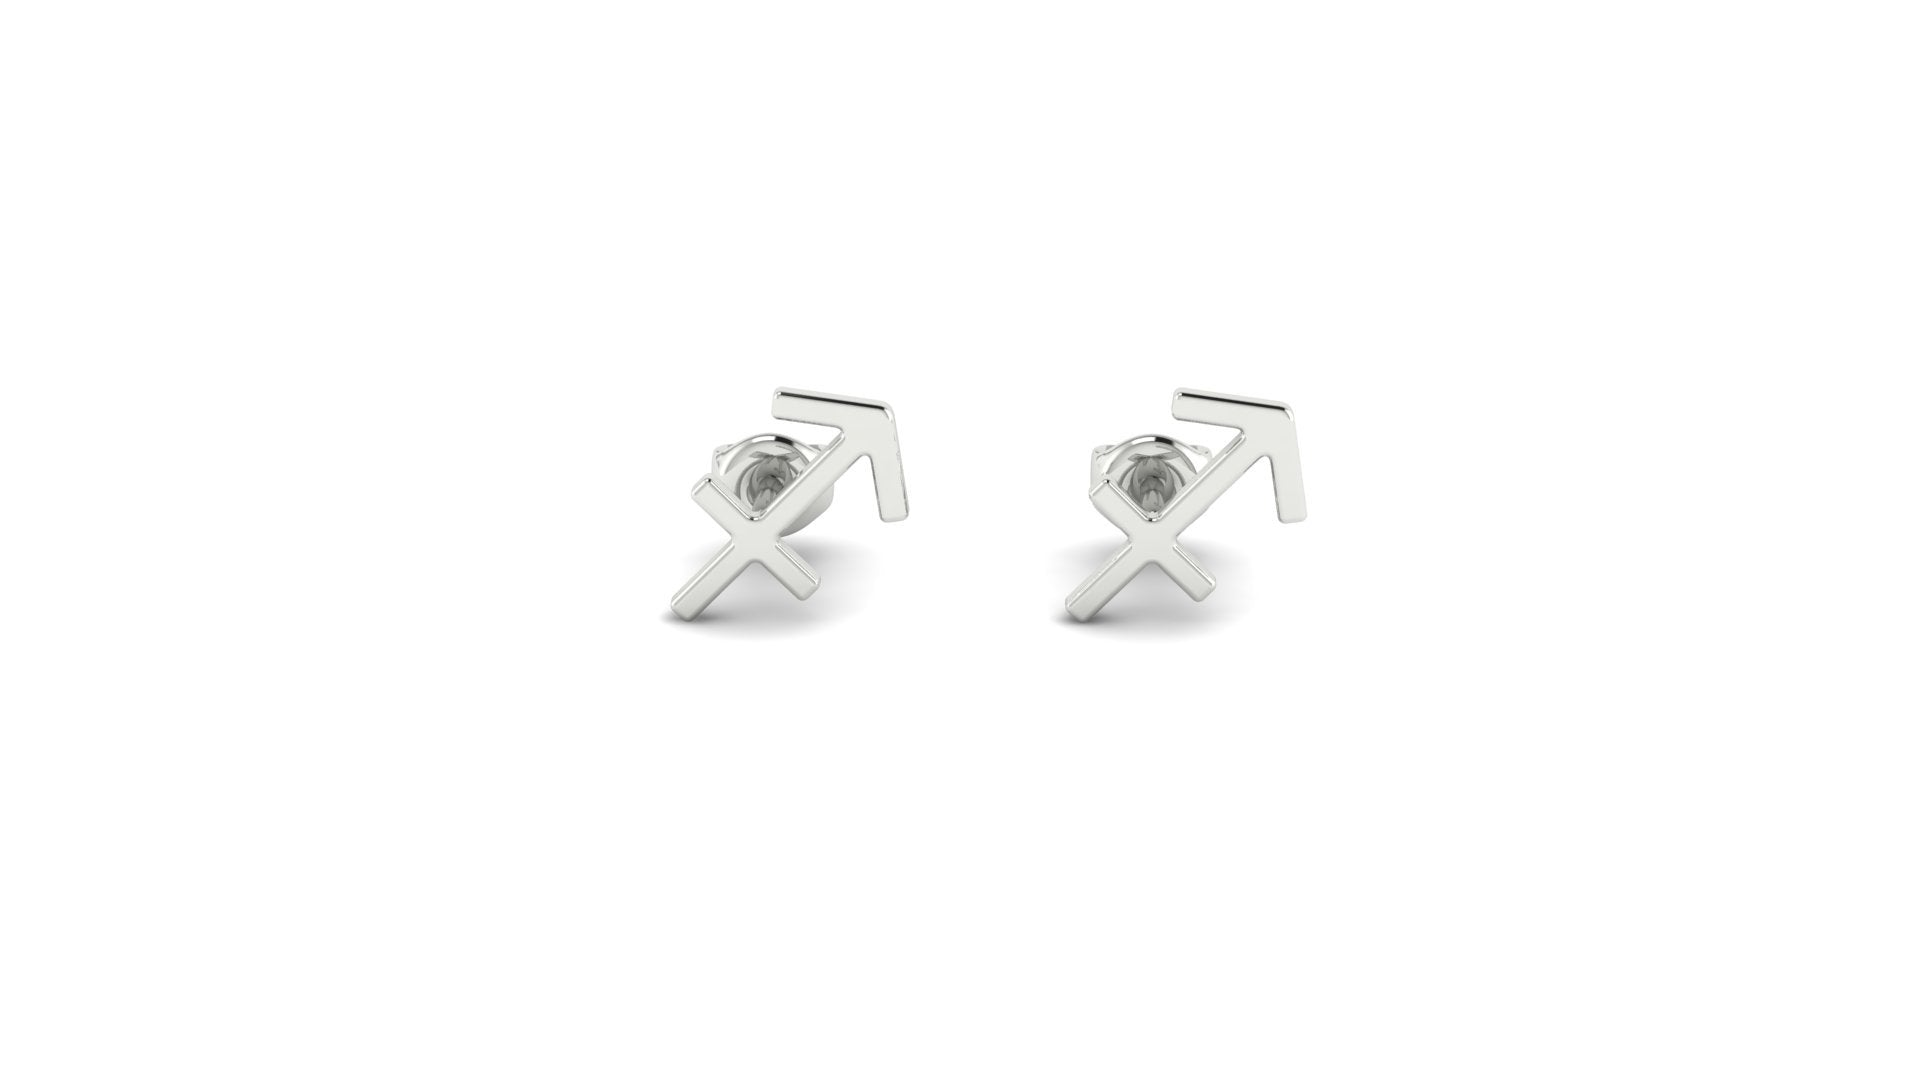 SAGITTARIUS ZOSTUD EARRINGS